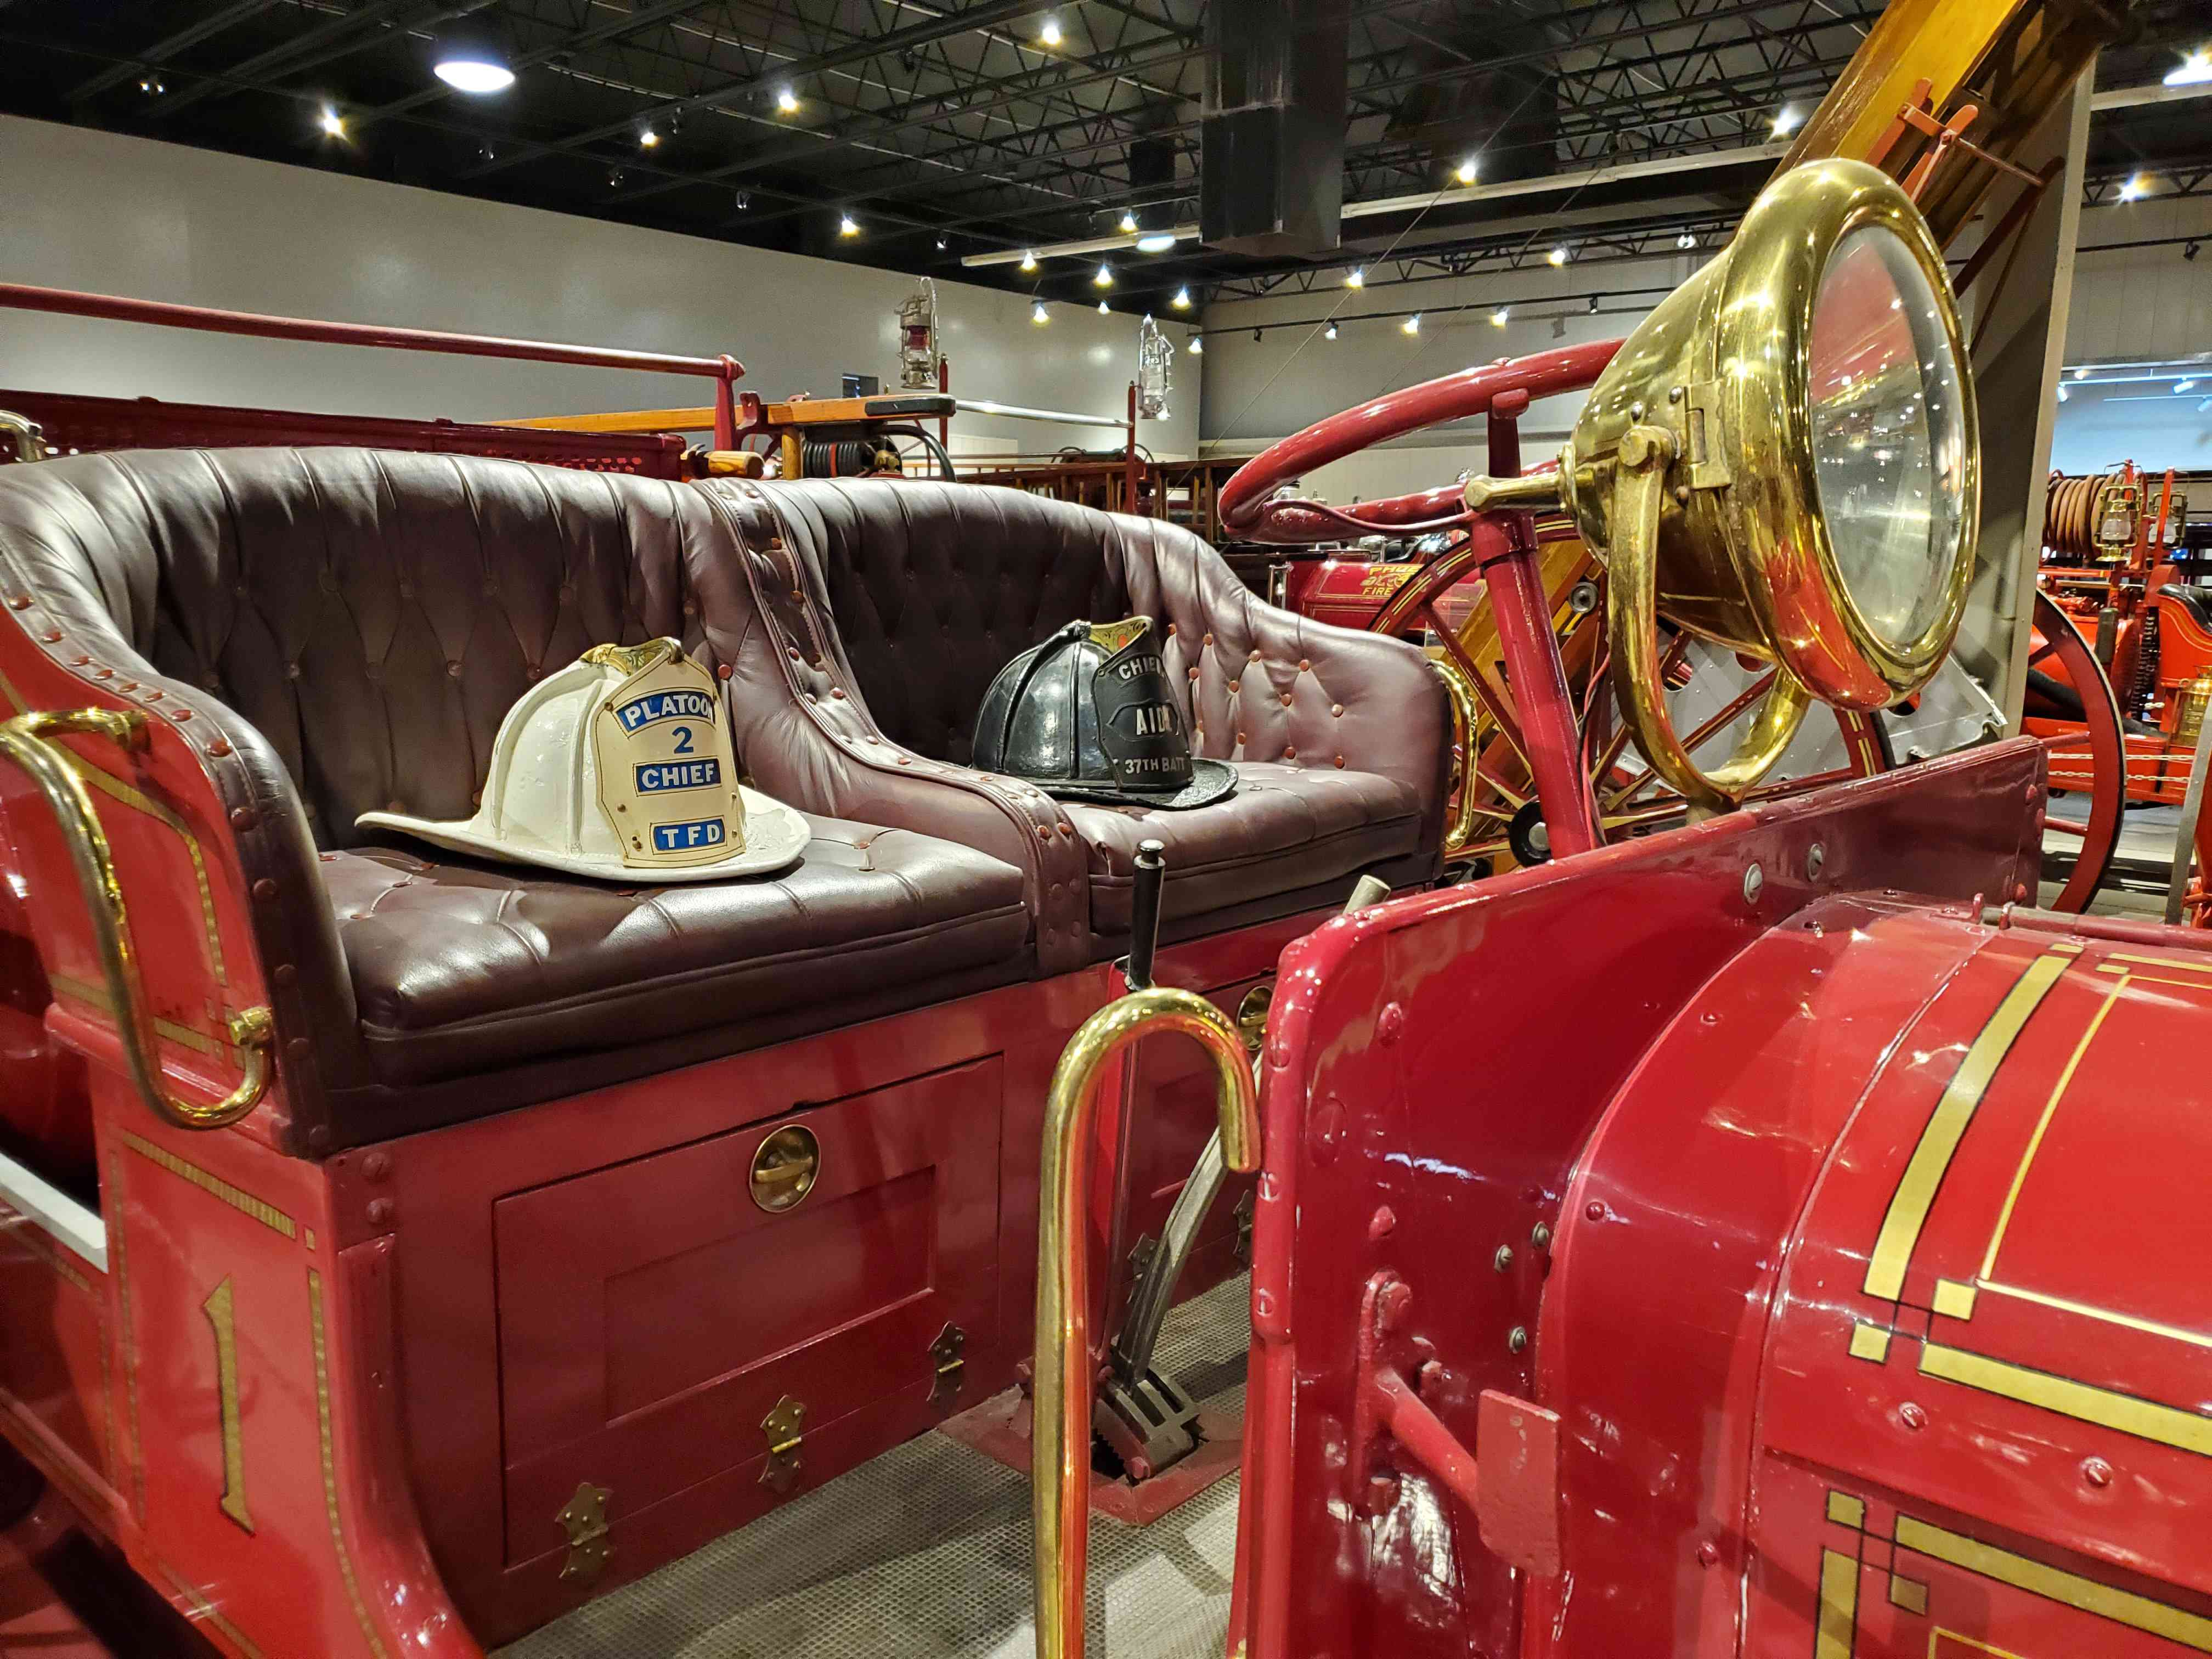 Vintage Fire truck and helmets